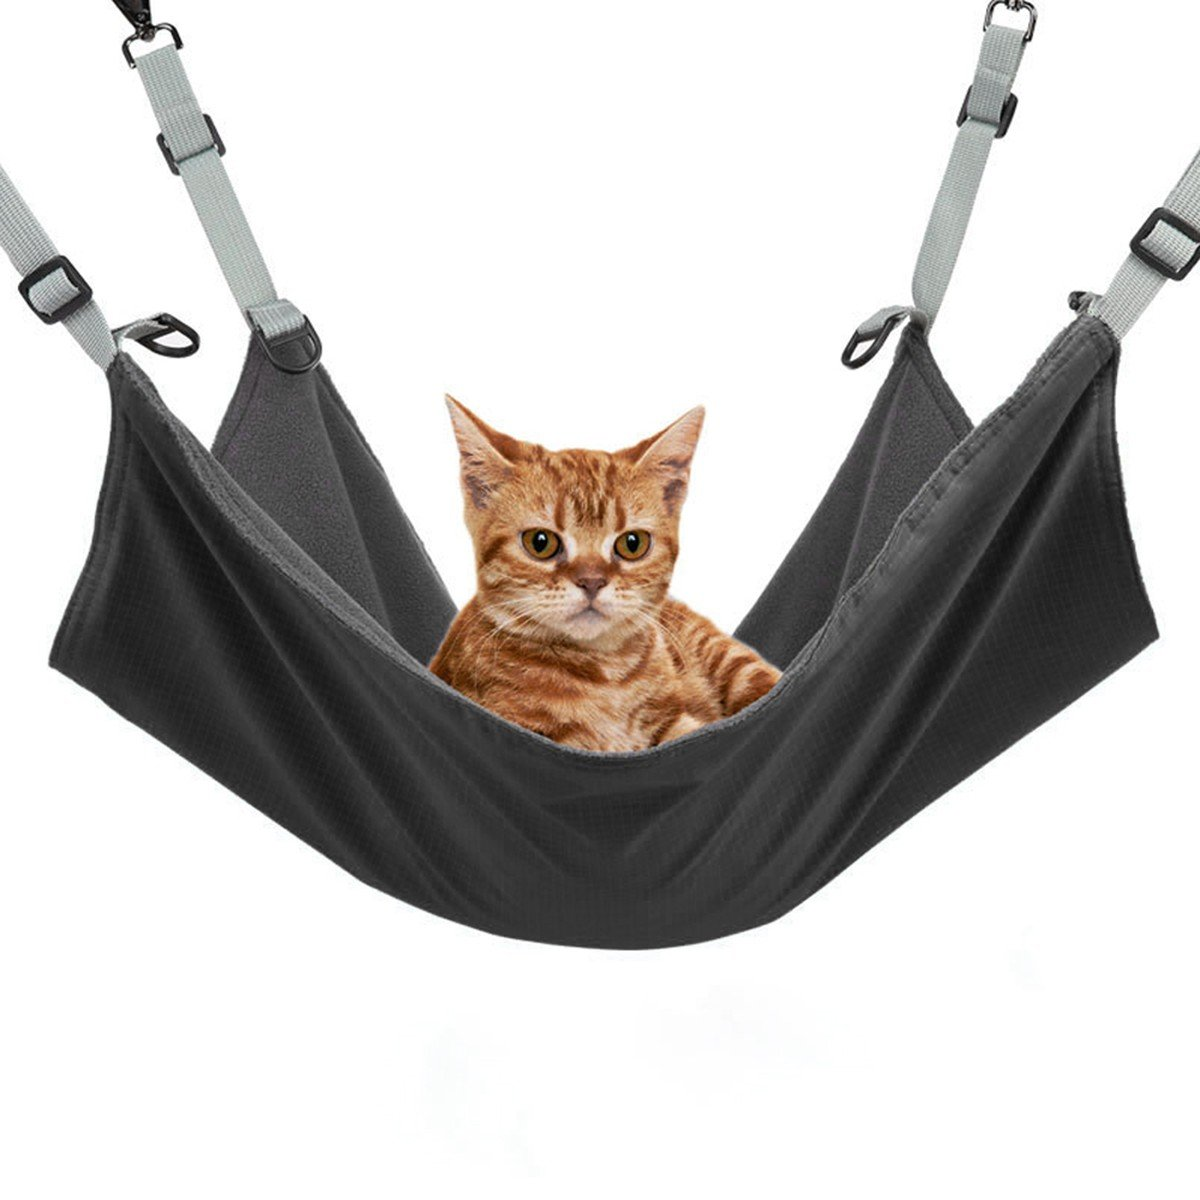 Cat Hammock Bed, Zuoao Hanging kitten Hammock Pad Best for Crate Cage Chair for Kitten Puppy Bunny or Pet Rat (Black)